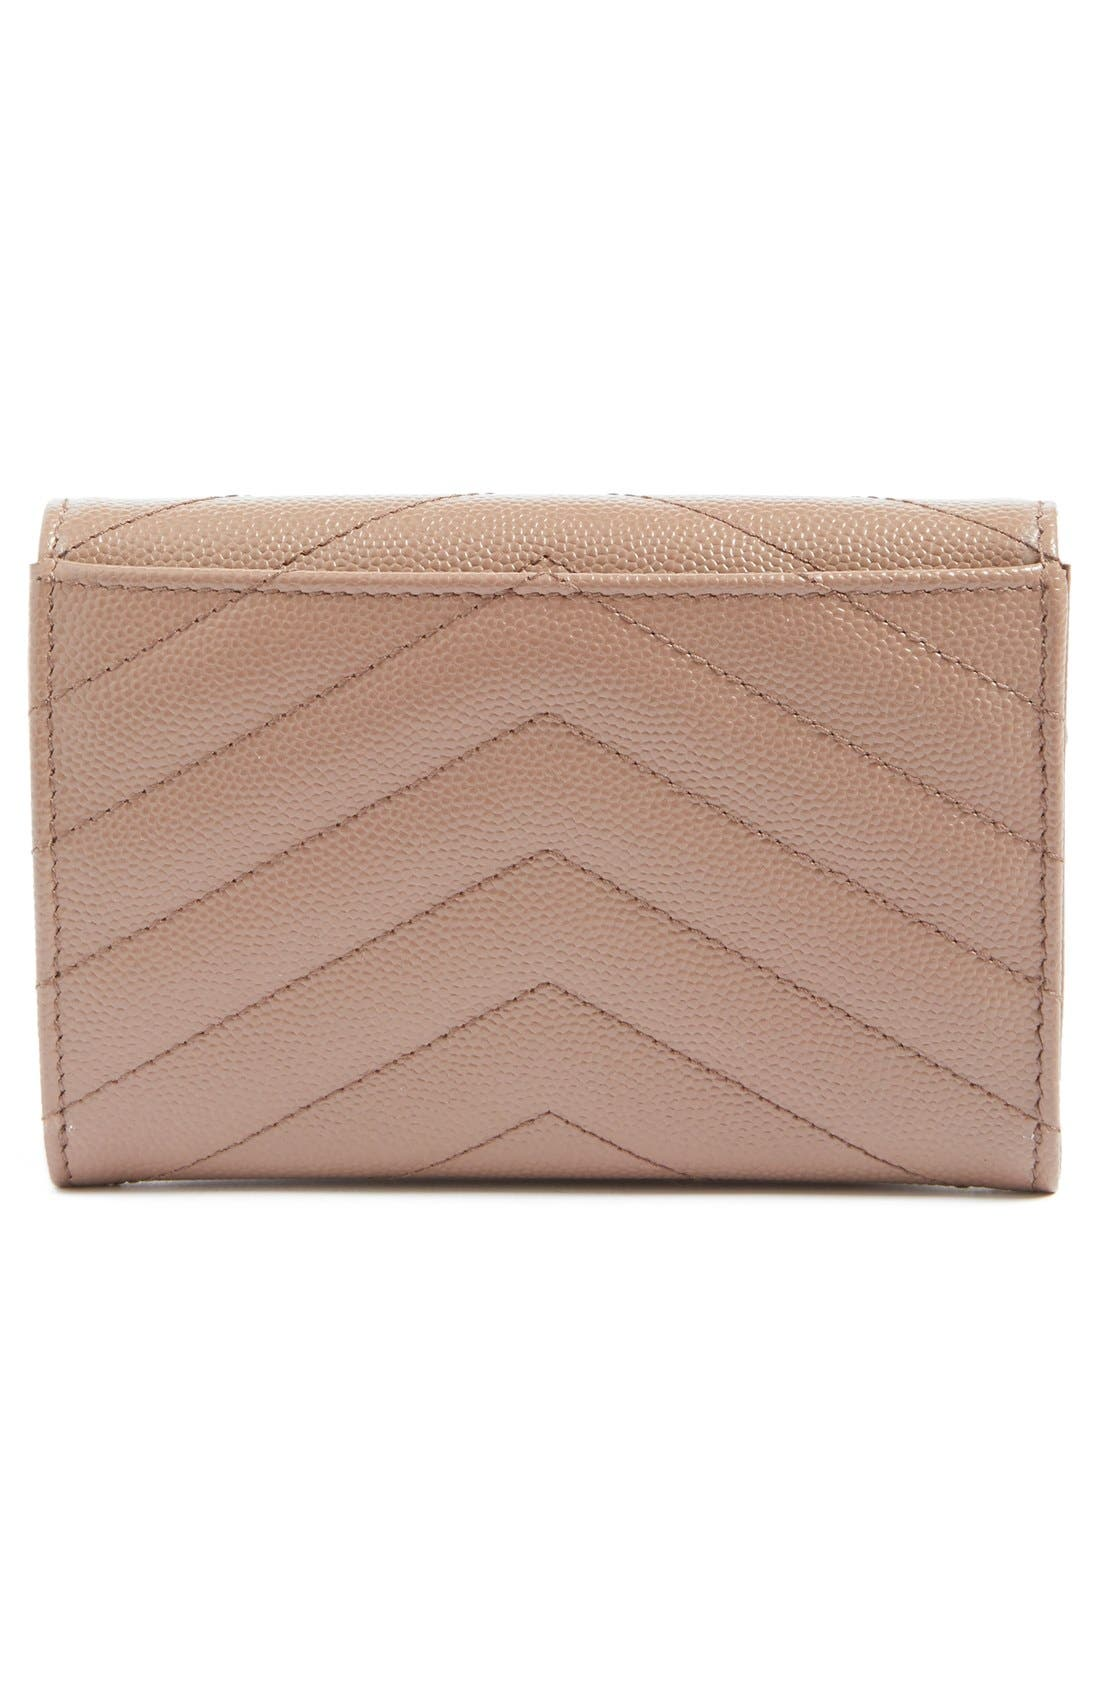 'Small Monogram' Leather French Wallet,                             Alternate thumbnail 33, color,